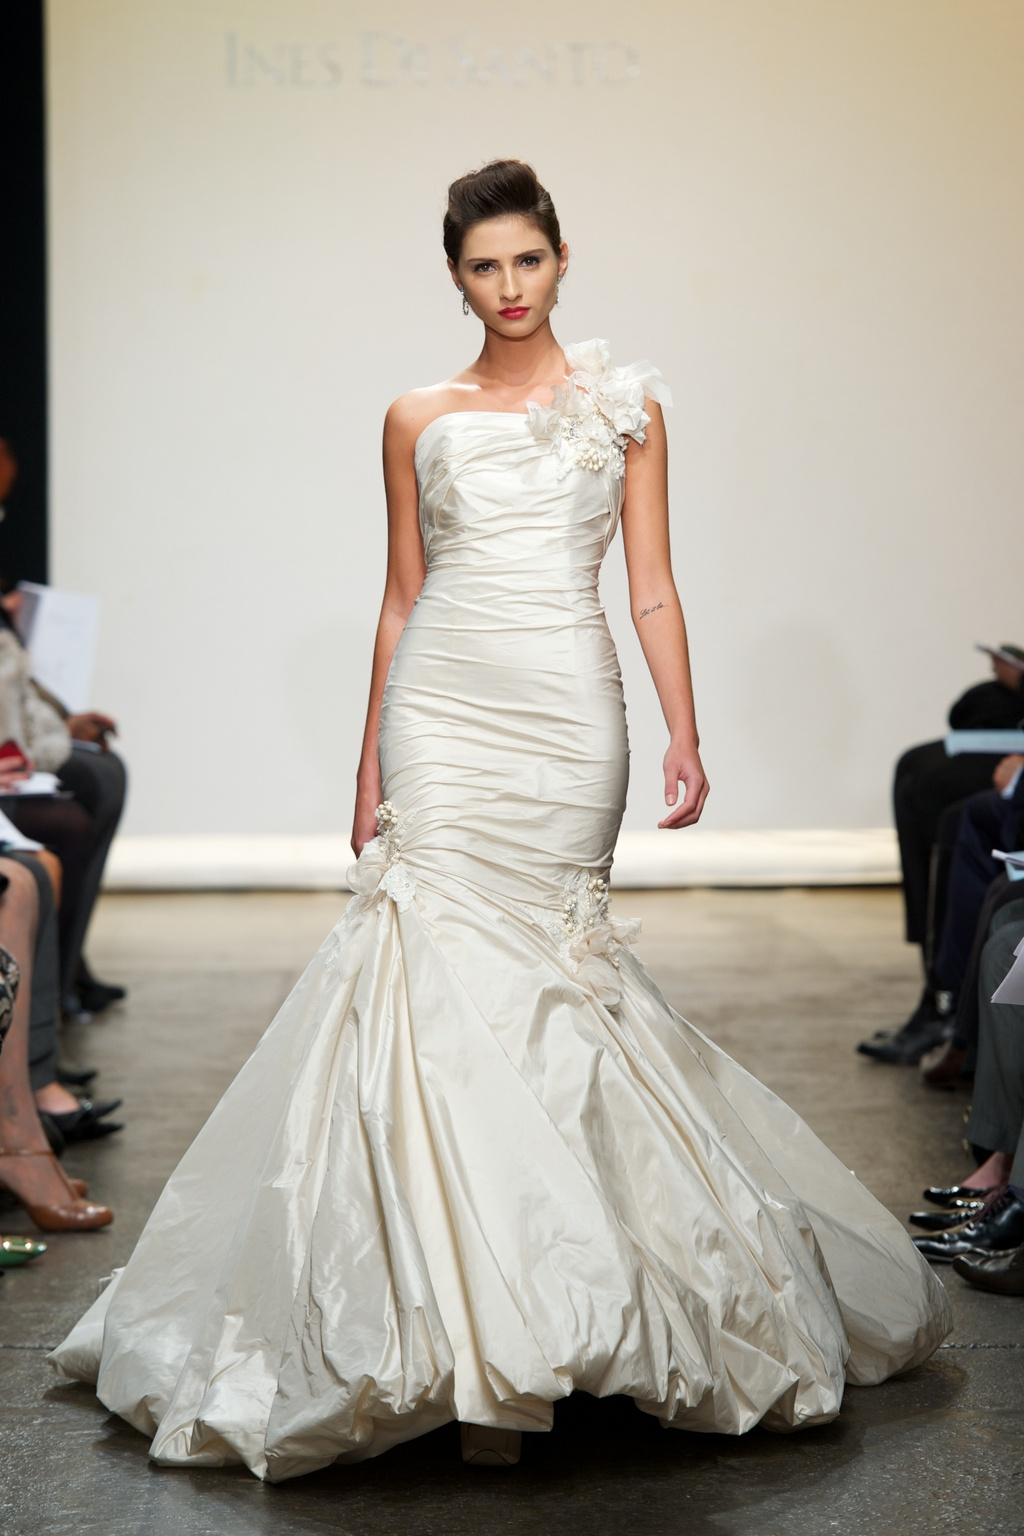 2013 Wedding Dress by Ines di Santo Padua